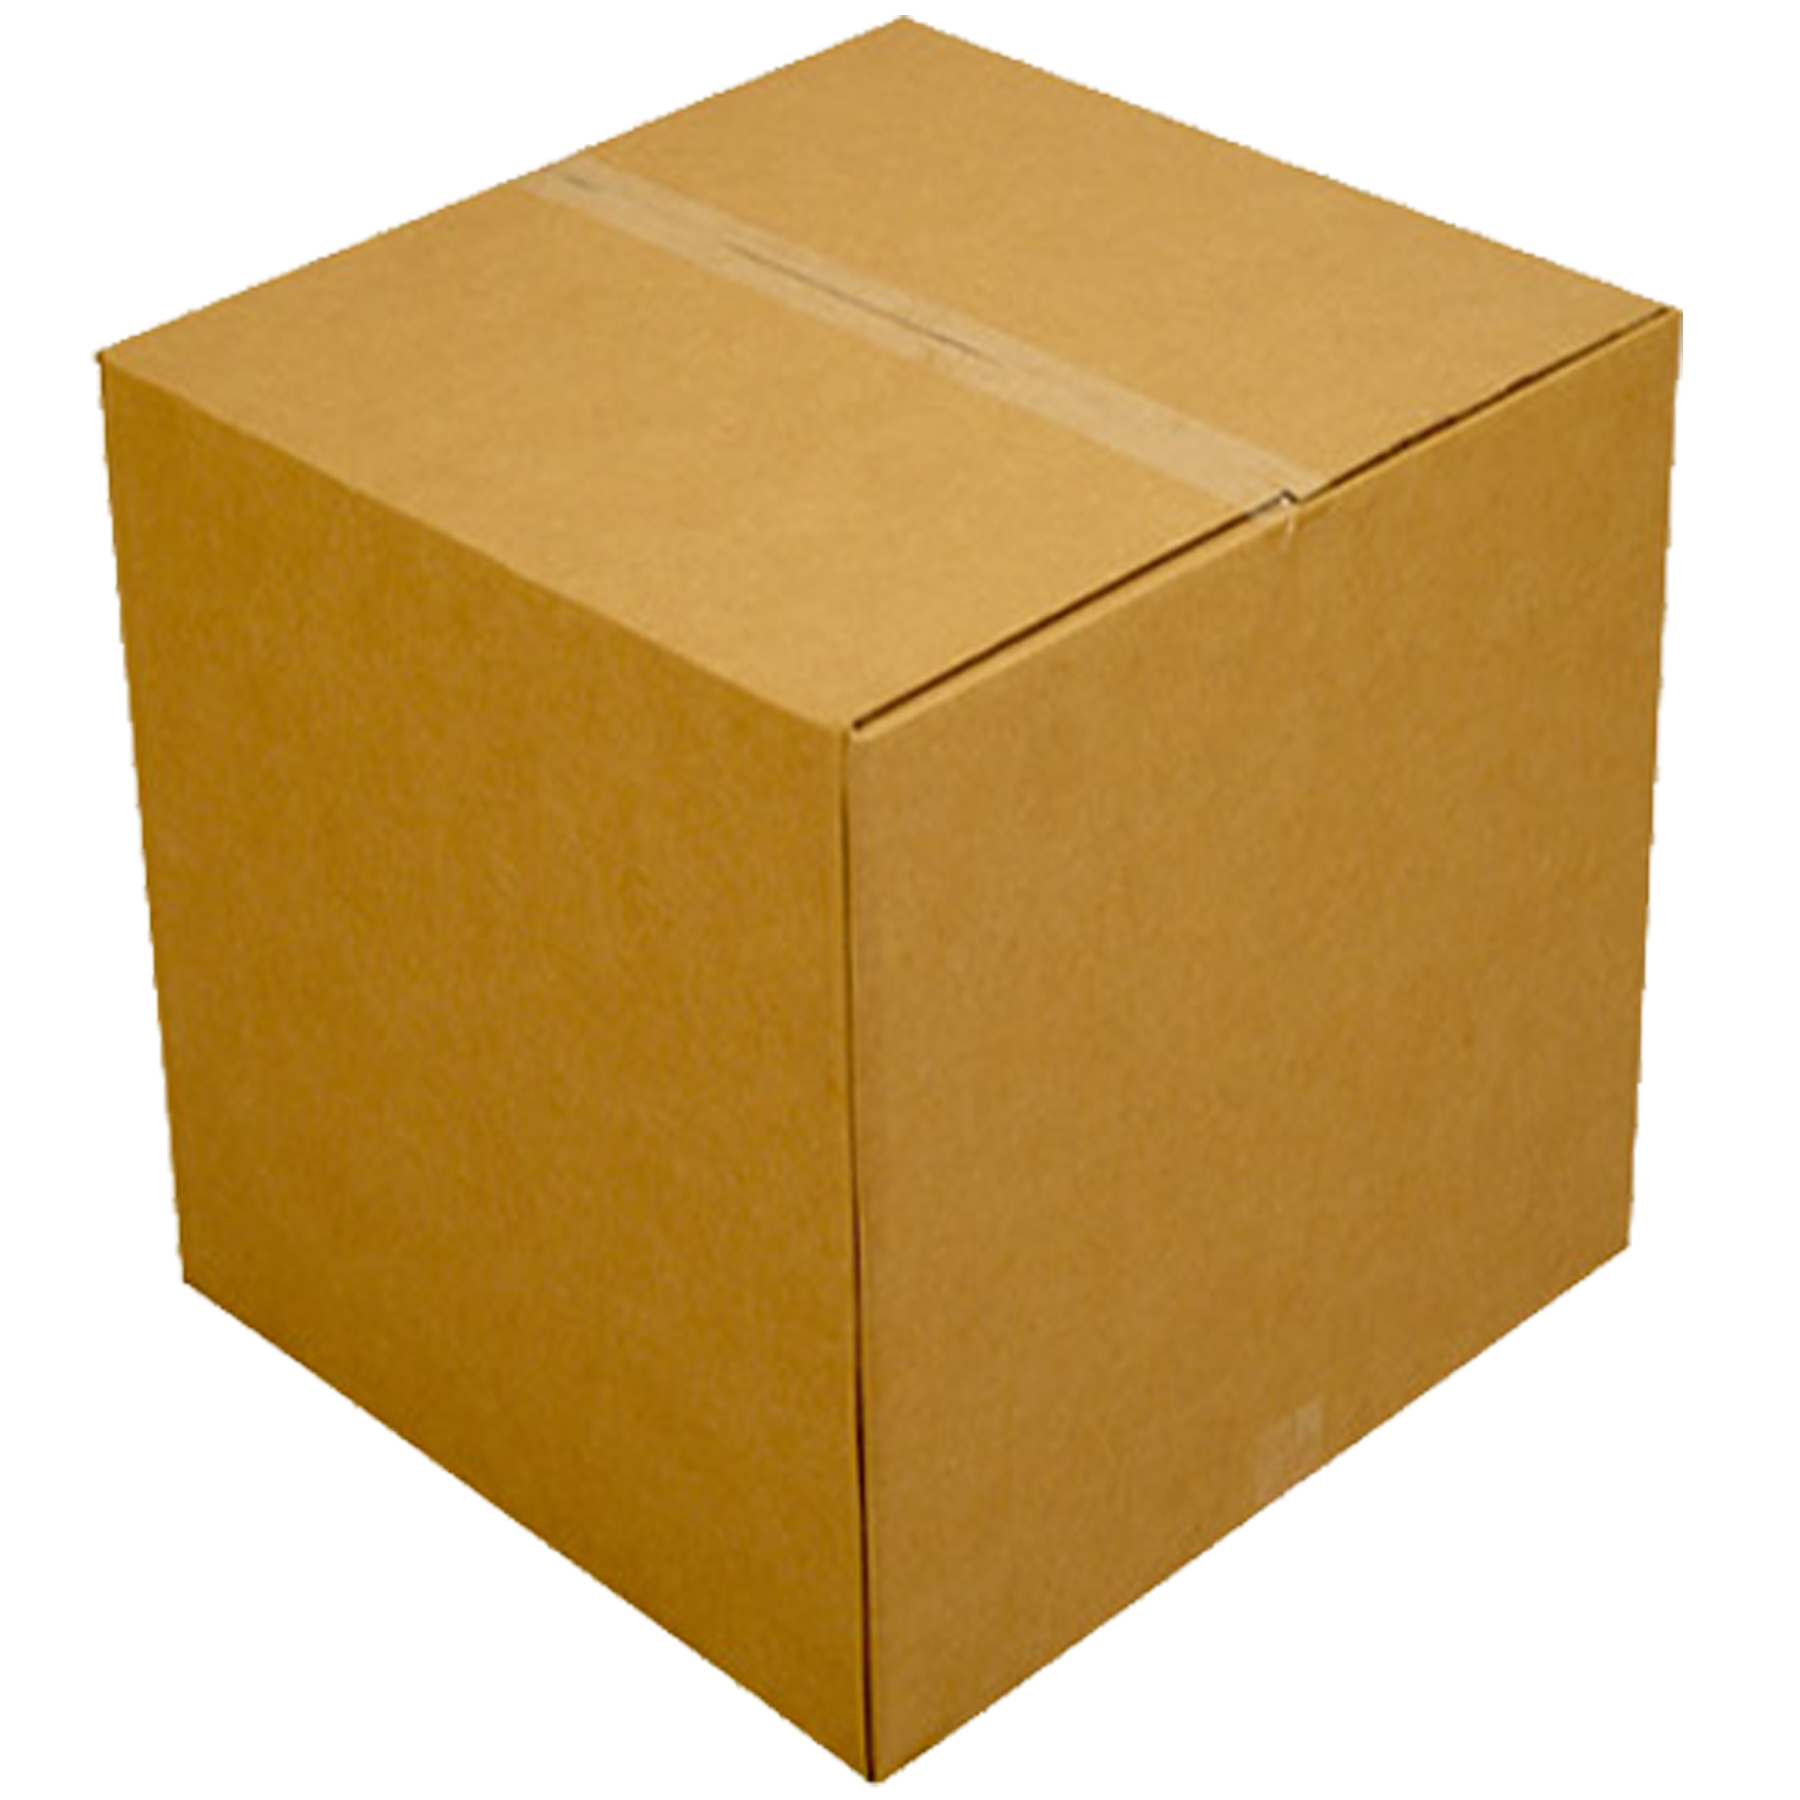 12 Large Moving Boxes 20x20x15-inches Packing Cardboard Boxes | eBay